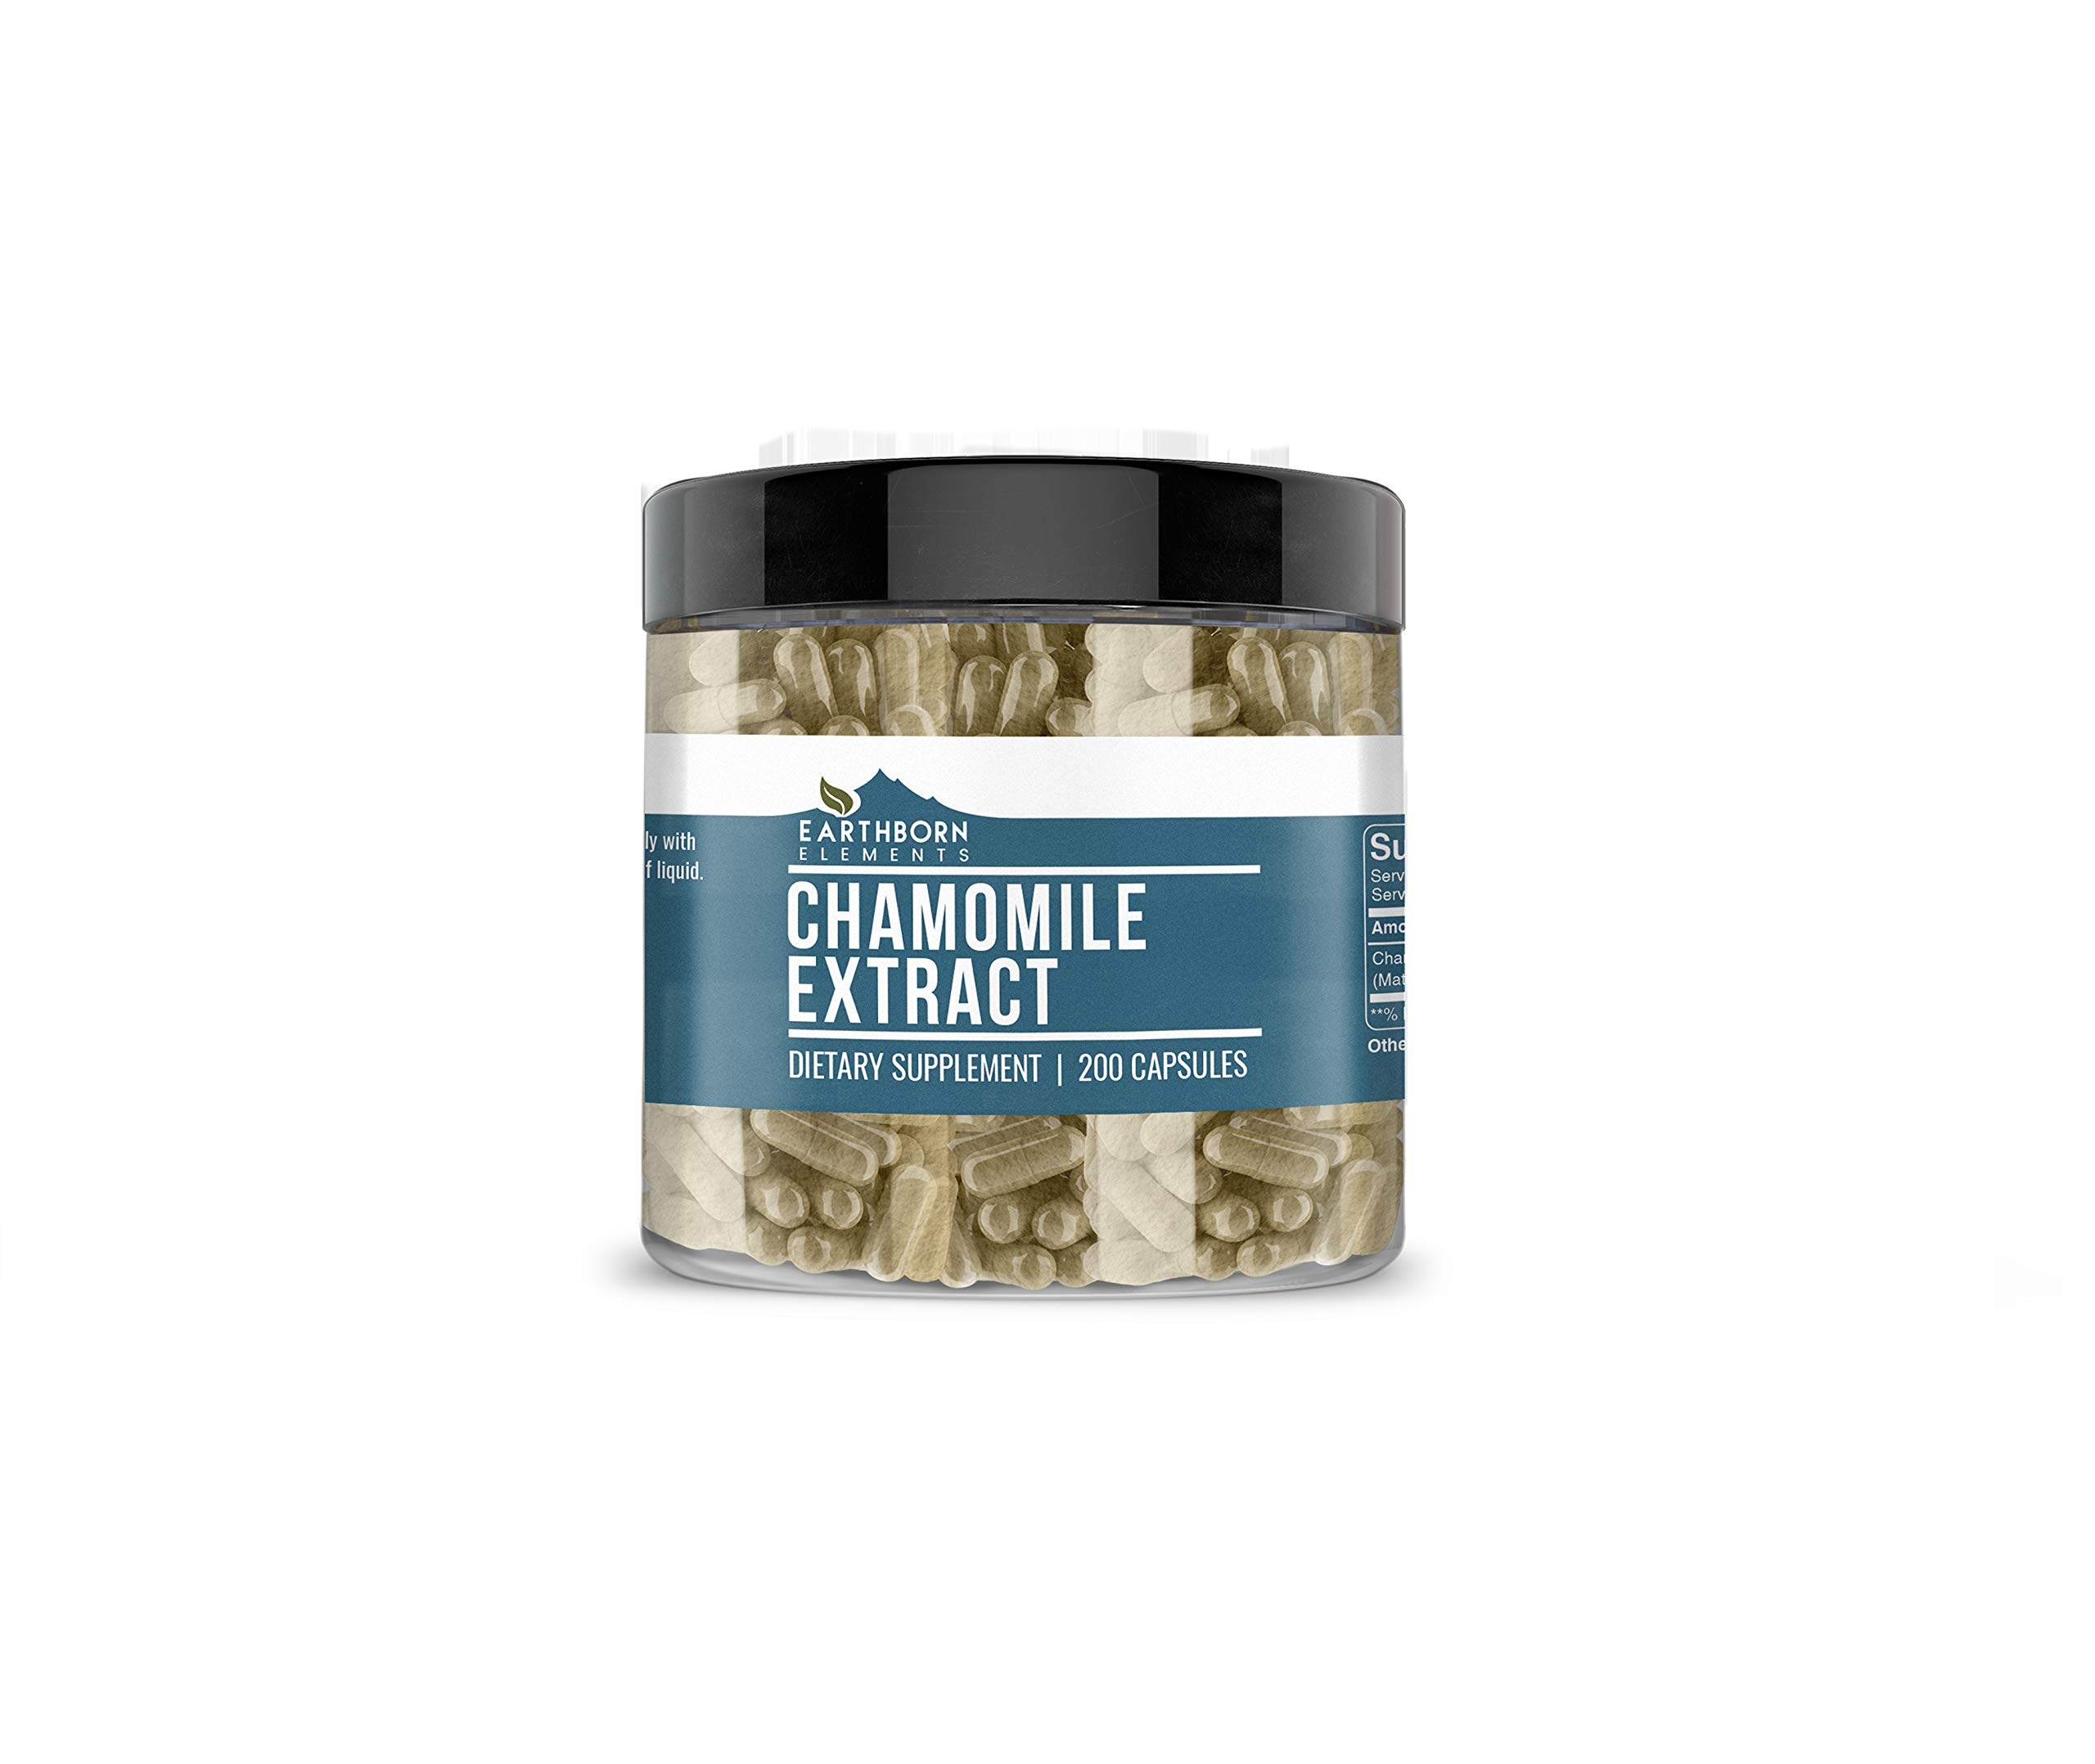 Chamomile Extract, 200 Caps, 450 mg Serving, Non-GMO, Pure, Potent & Natural, No Rice Fillers or Stearates, Made in The USA, Lab-Tested Quality